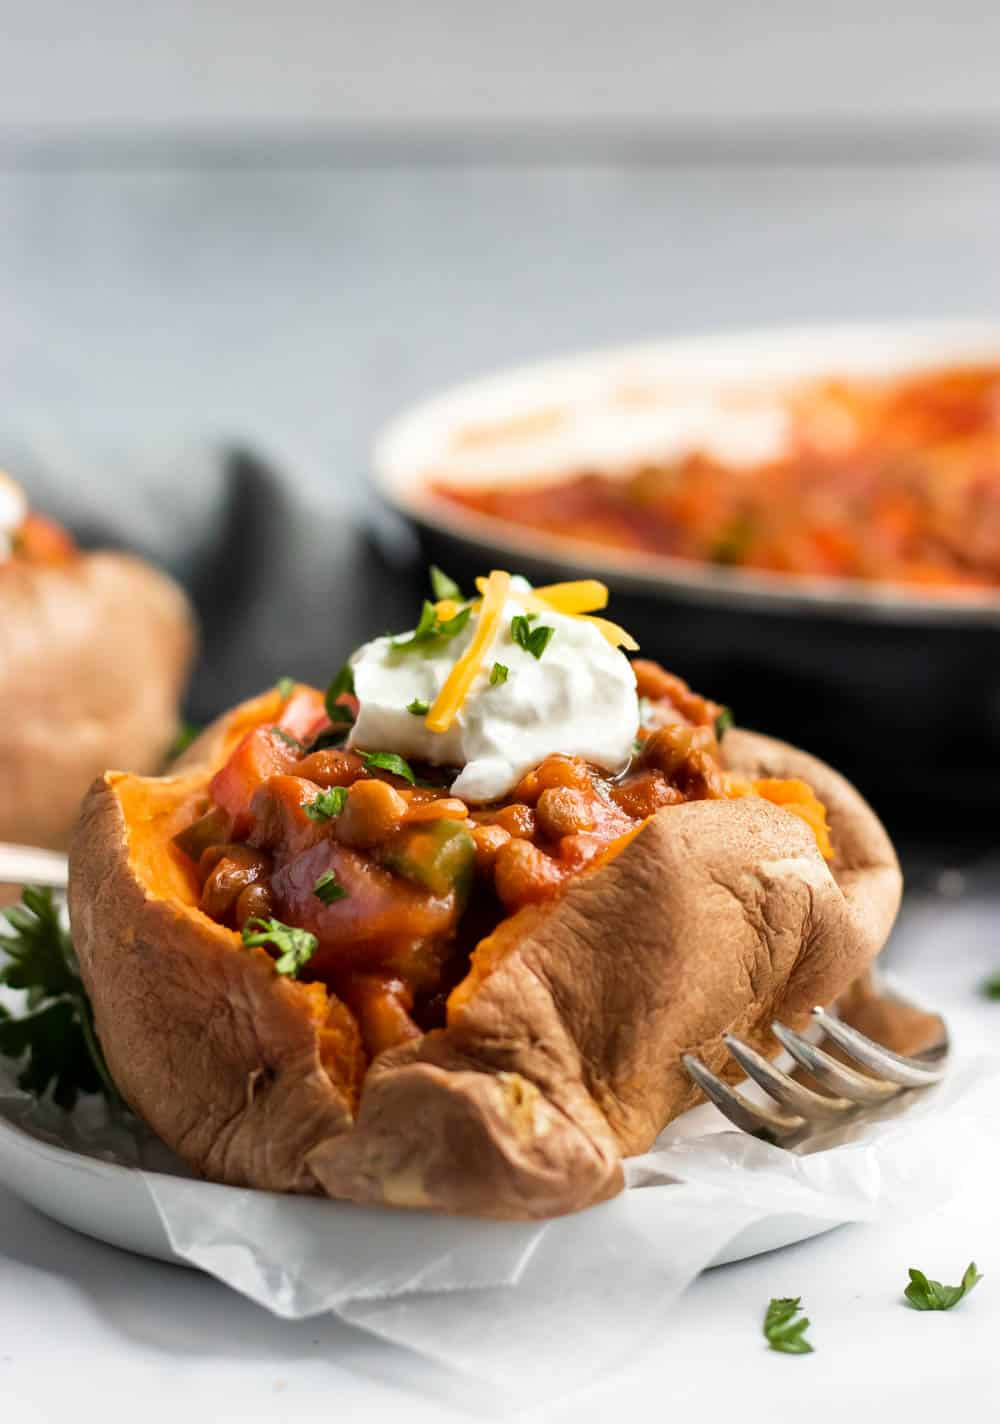 Lentils stuffed in sweet potato.